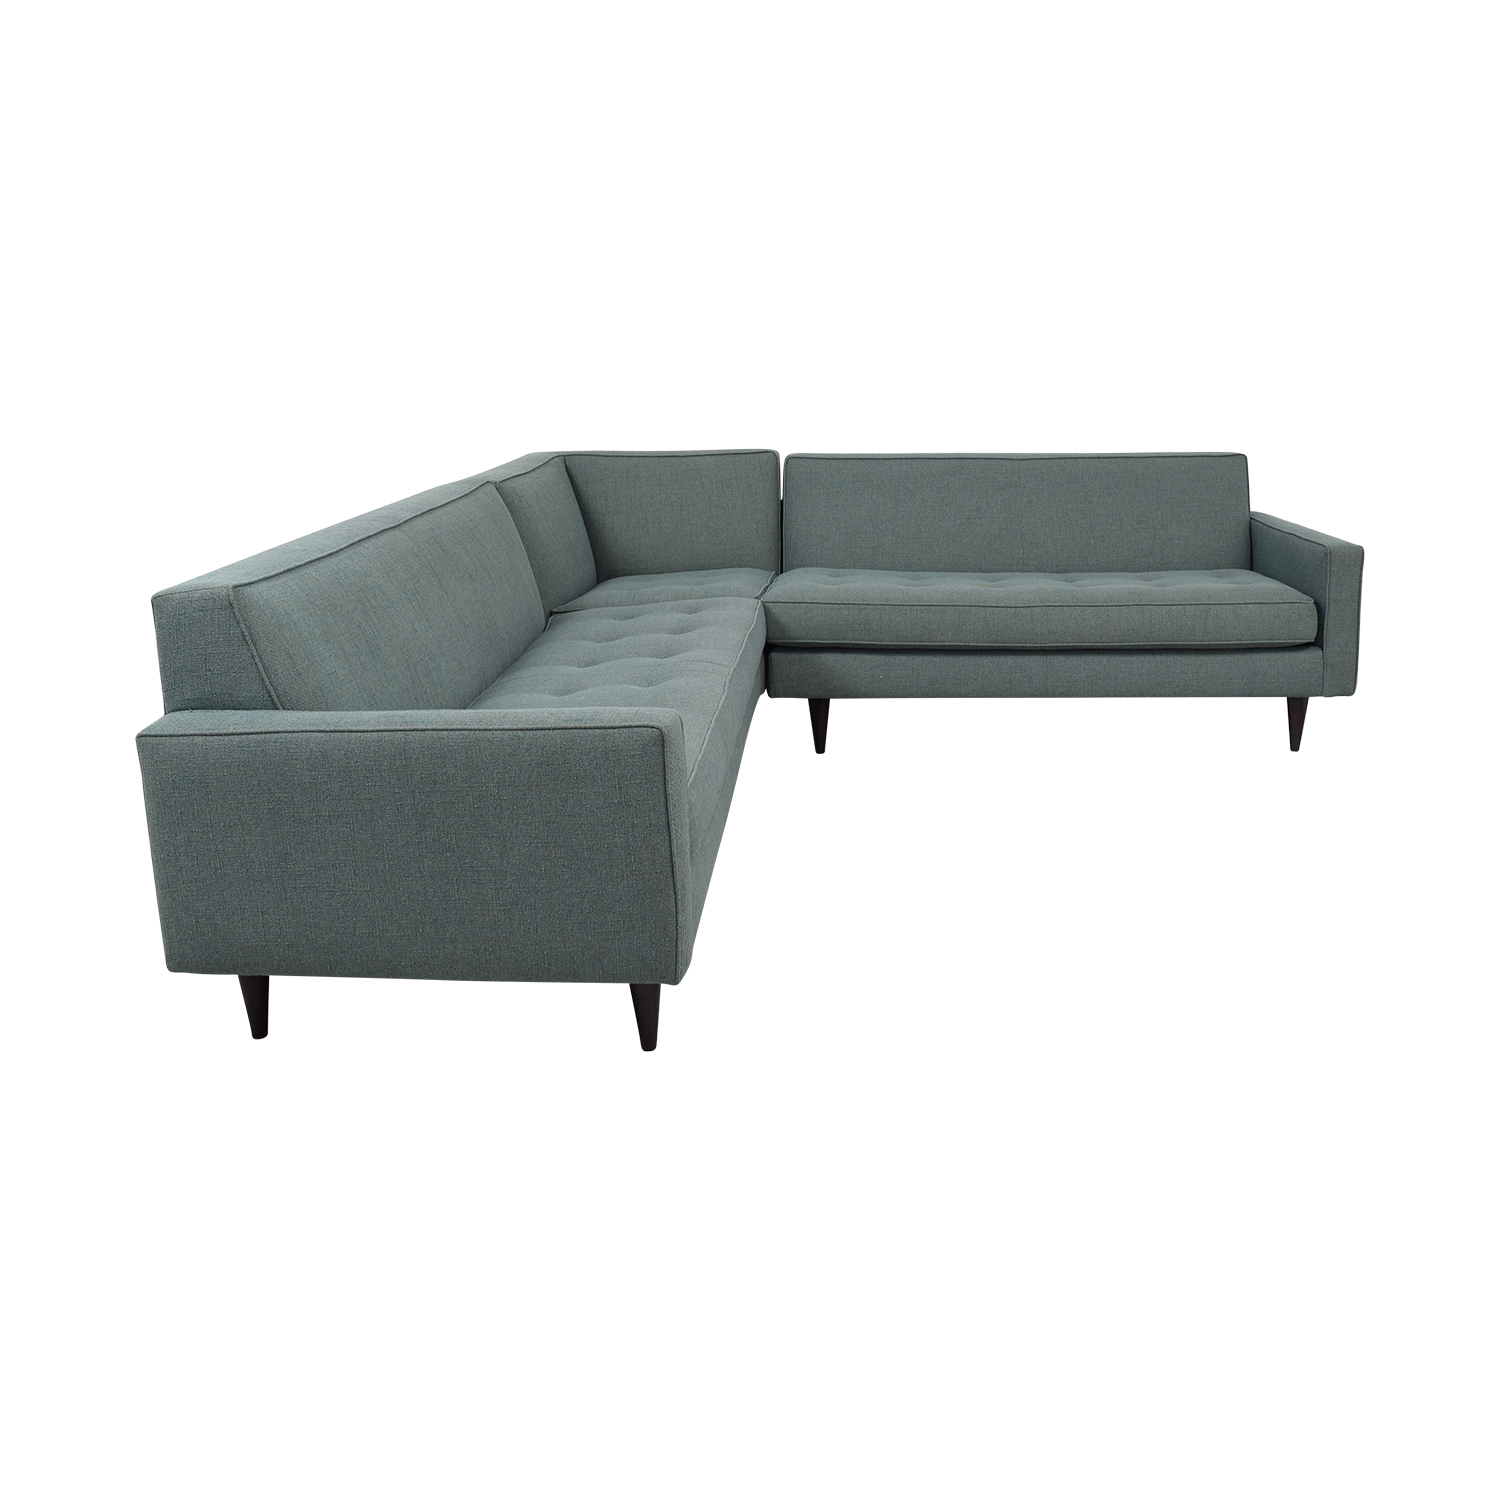 Room & Board Reese Tactum Teal Sectional / Sofas